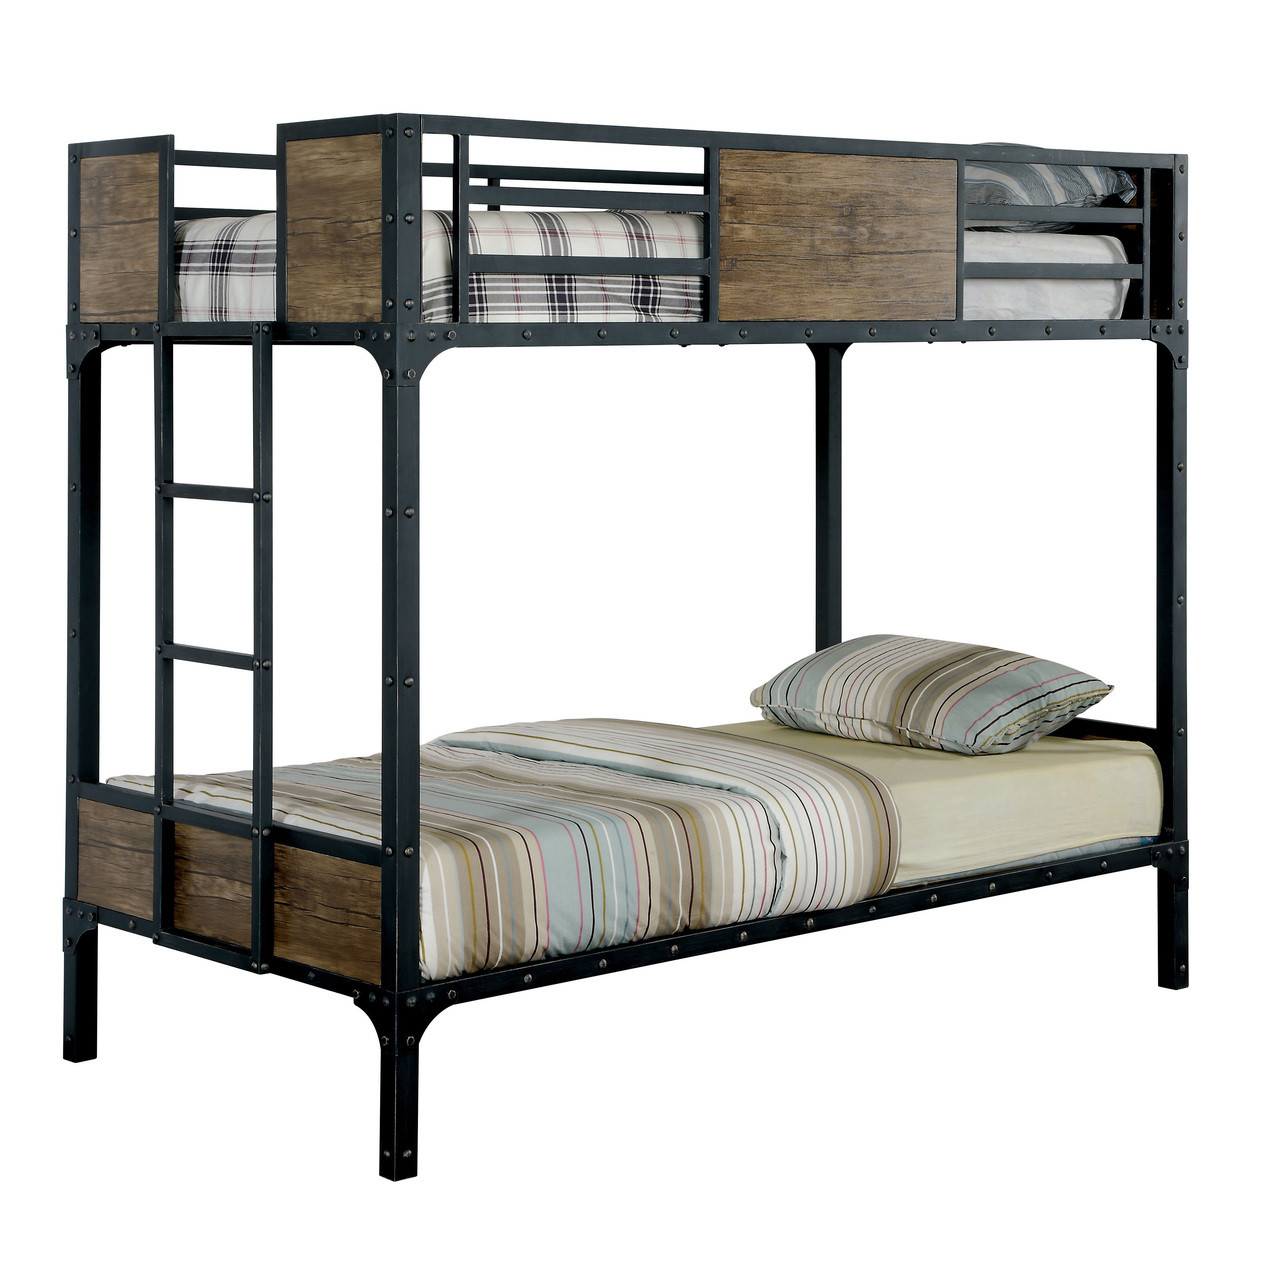 Furniture of america industrial metal wood twin bunk bed for Furniture 123 bunk beds